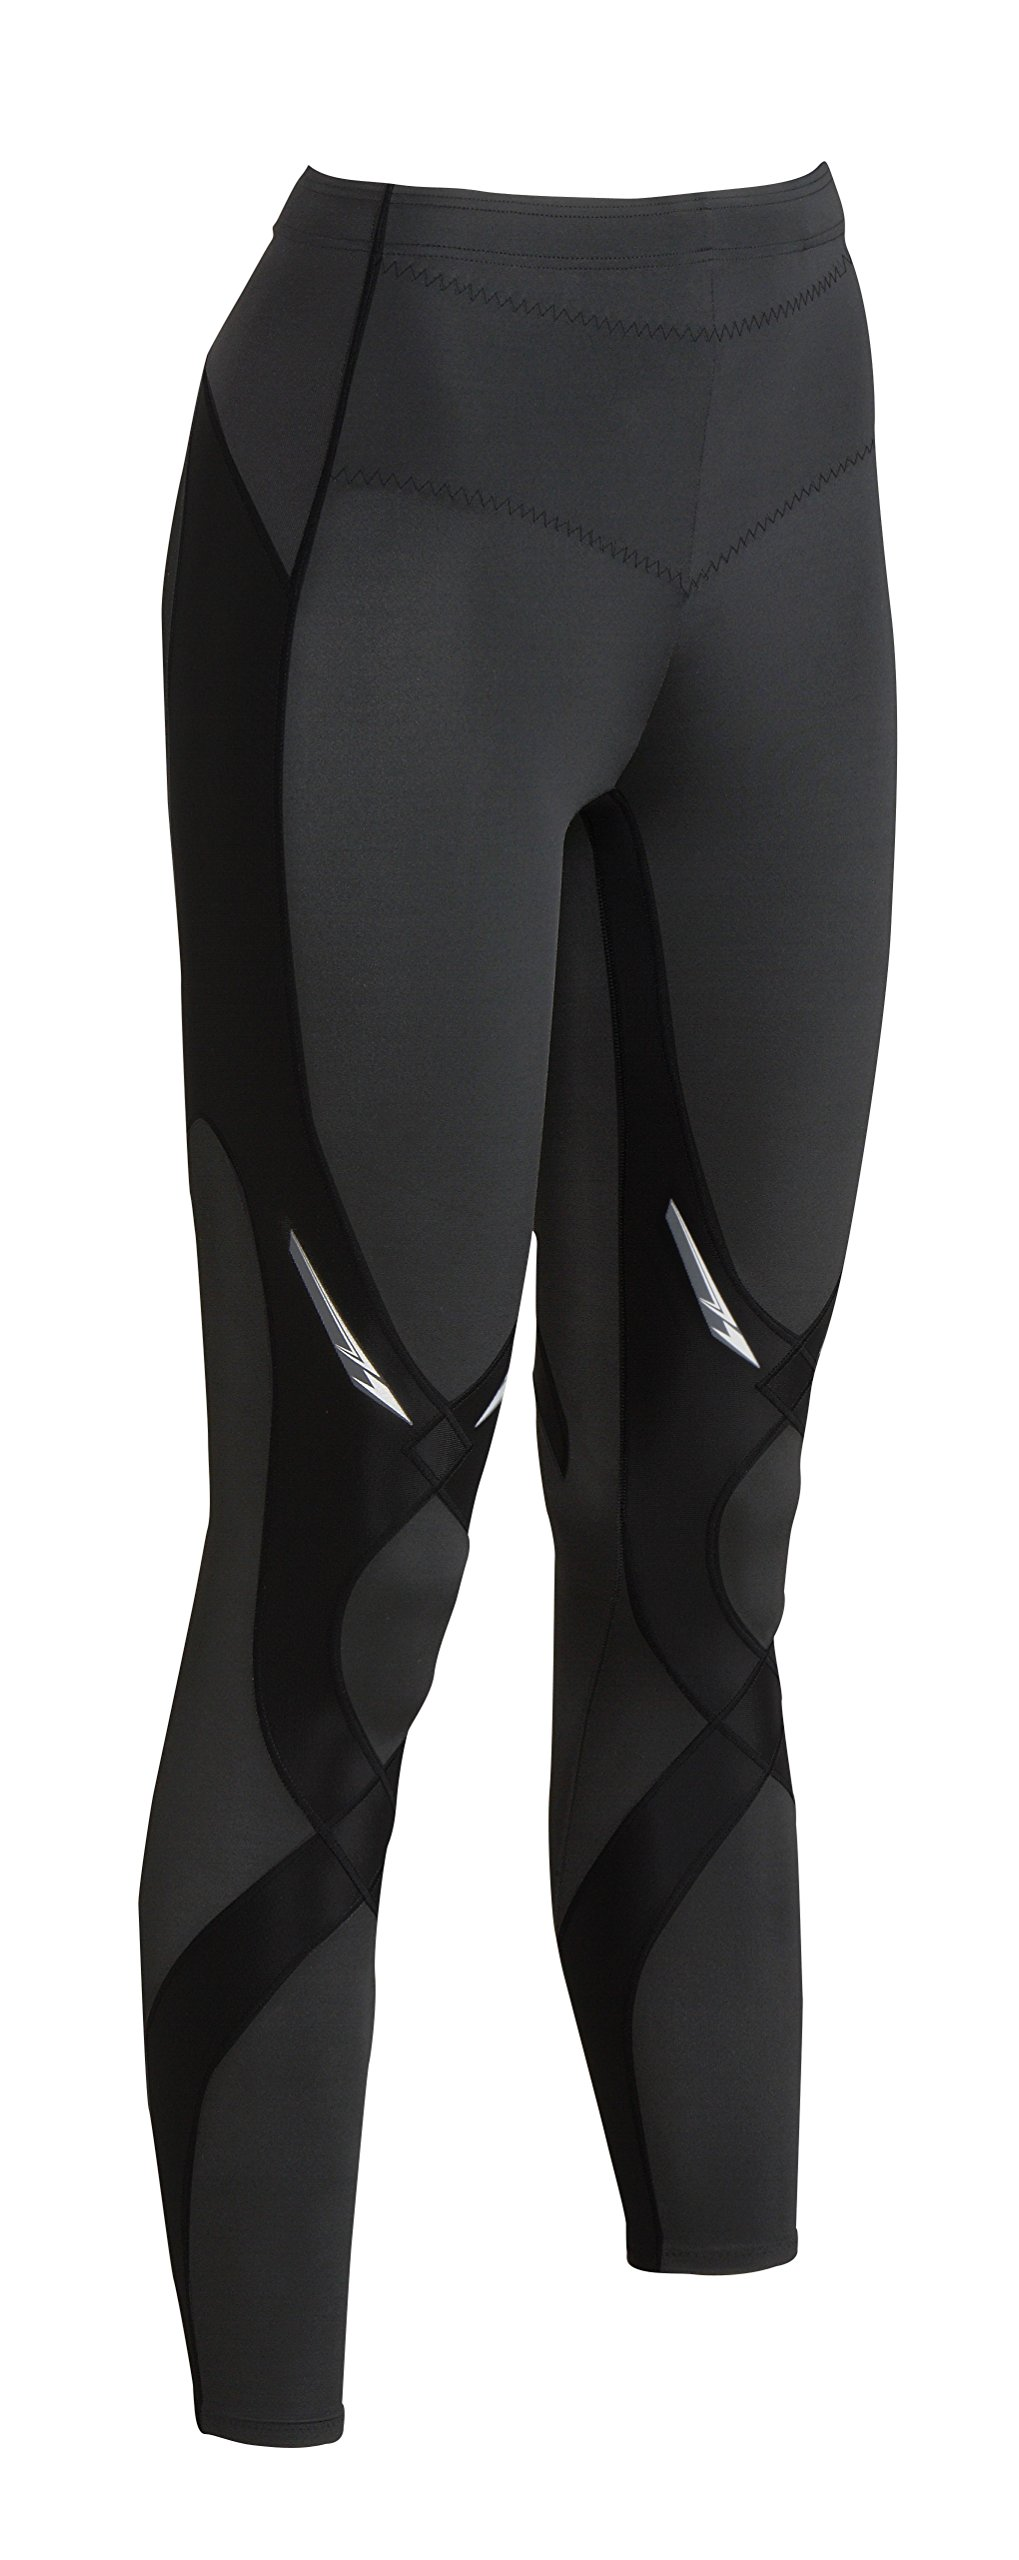 CW-X Women's Mid Rise Full Length Stabilyx Compression Legging Tights by CW-X